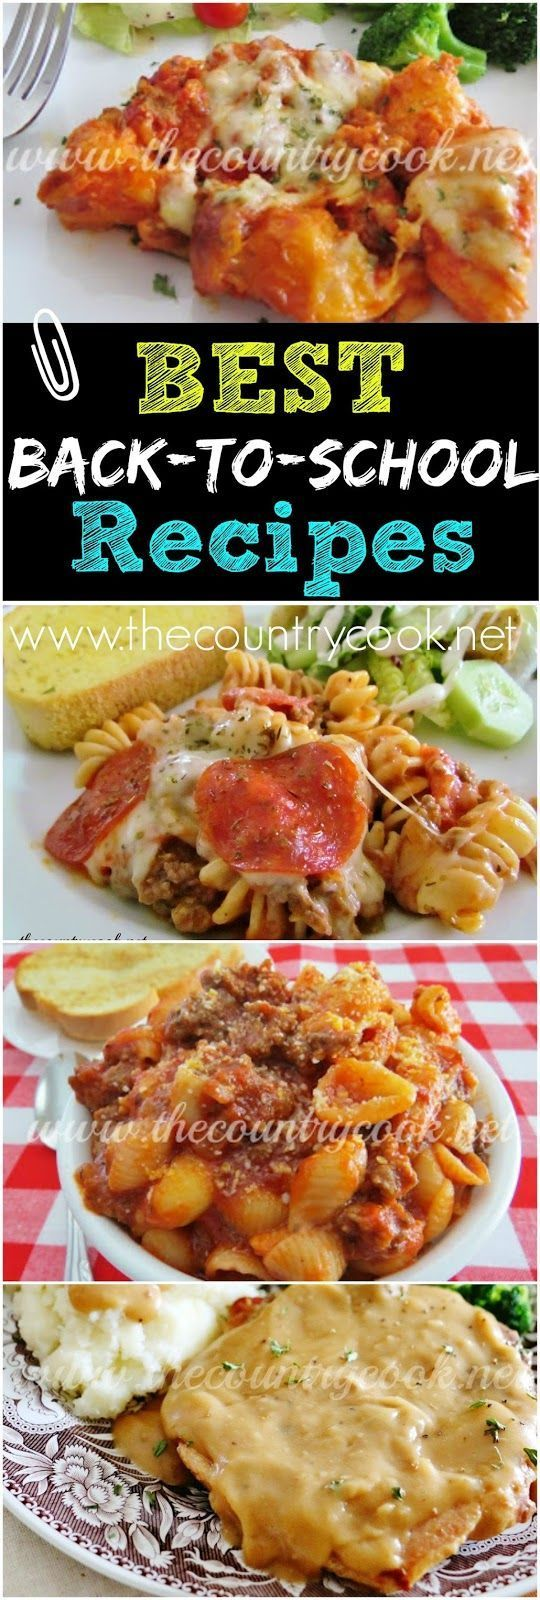 40  BEST  Back-to-School Recipes from The Country Cook. Simple,  budget-friendly, kid-friendly meals. The Bubble Up Lasagna and Pizza are  some of my ... 7158fb6726